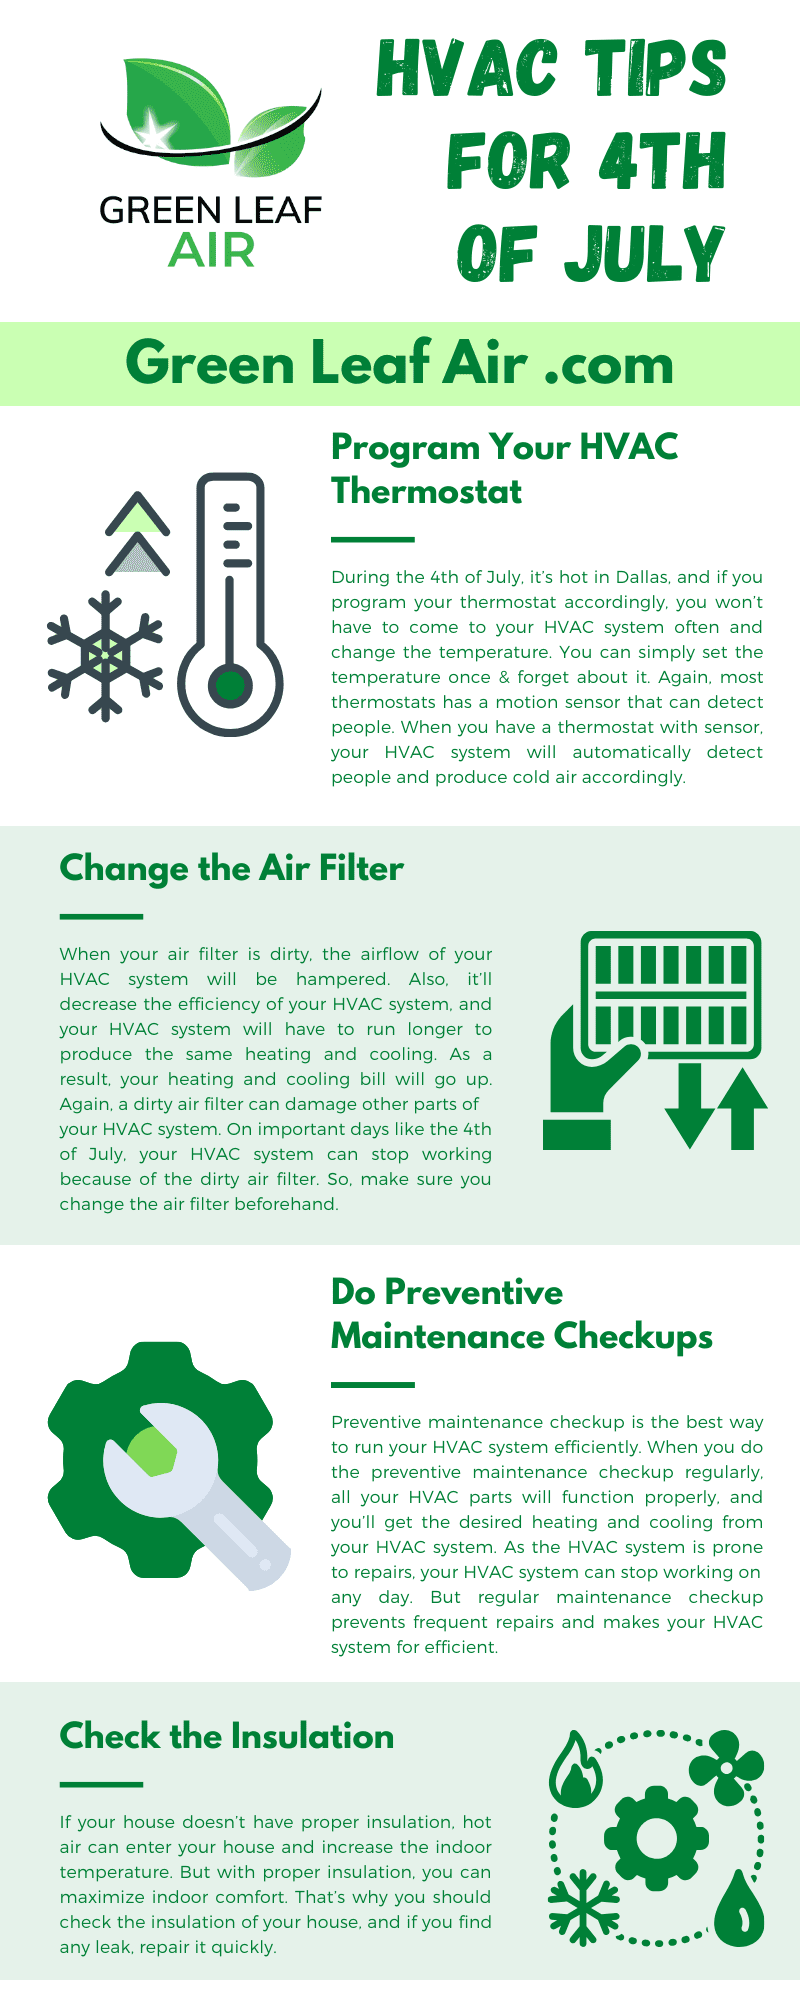 HVAC Tips for 4th of July